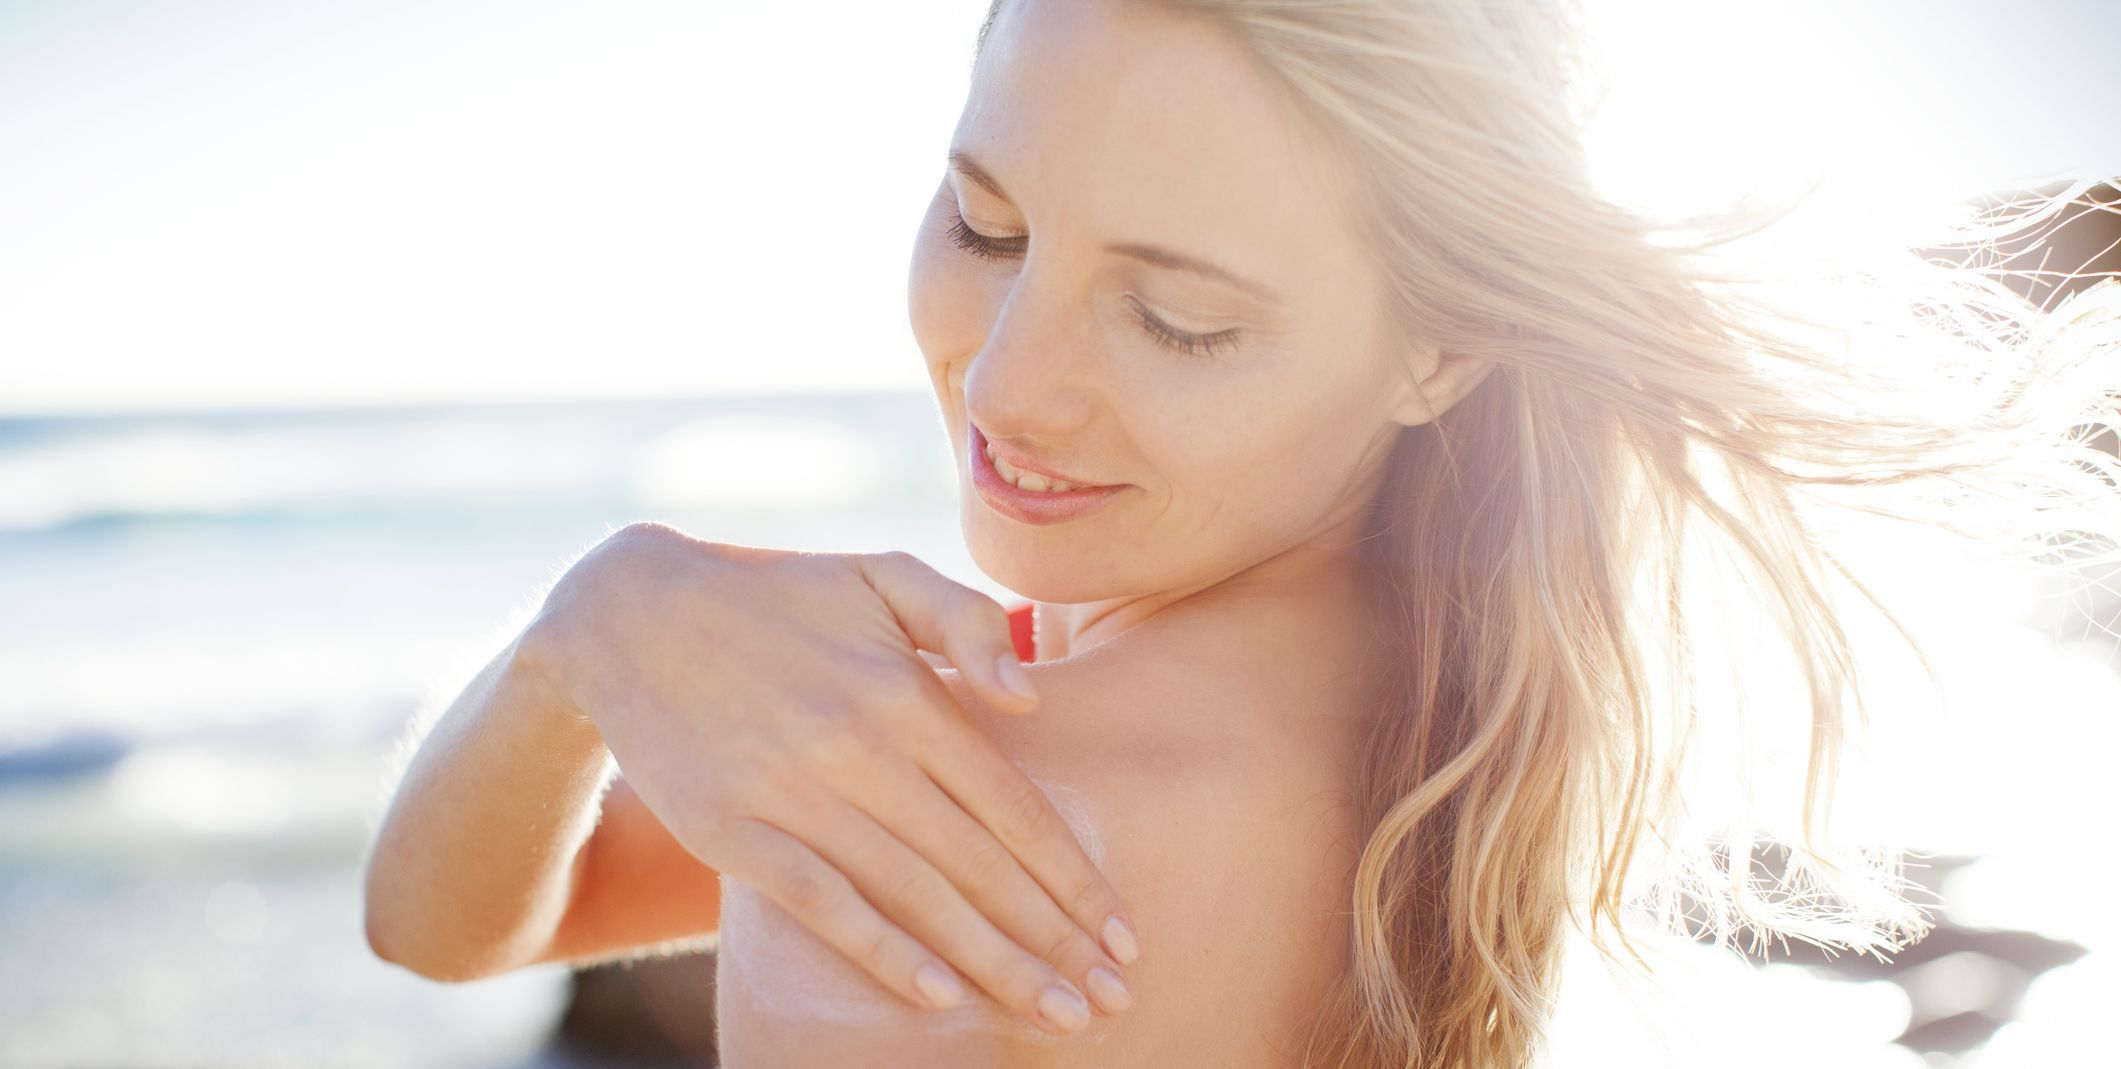 Applying Sunscreen to Shoulder